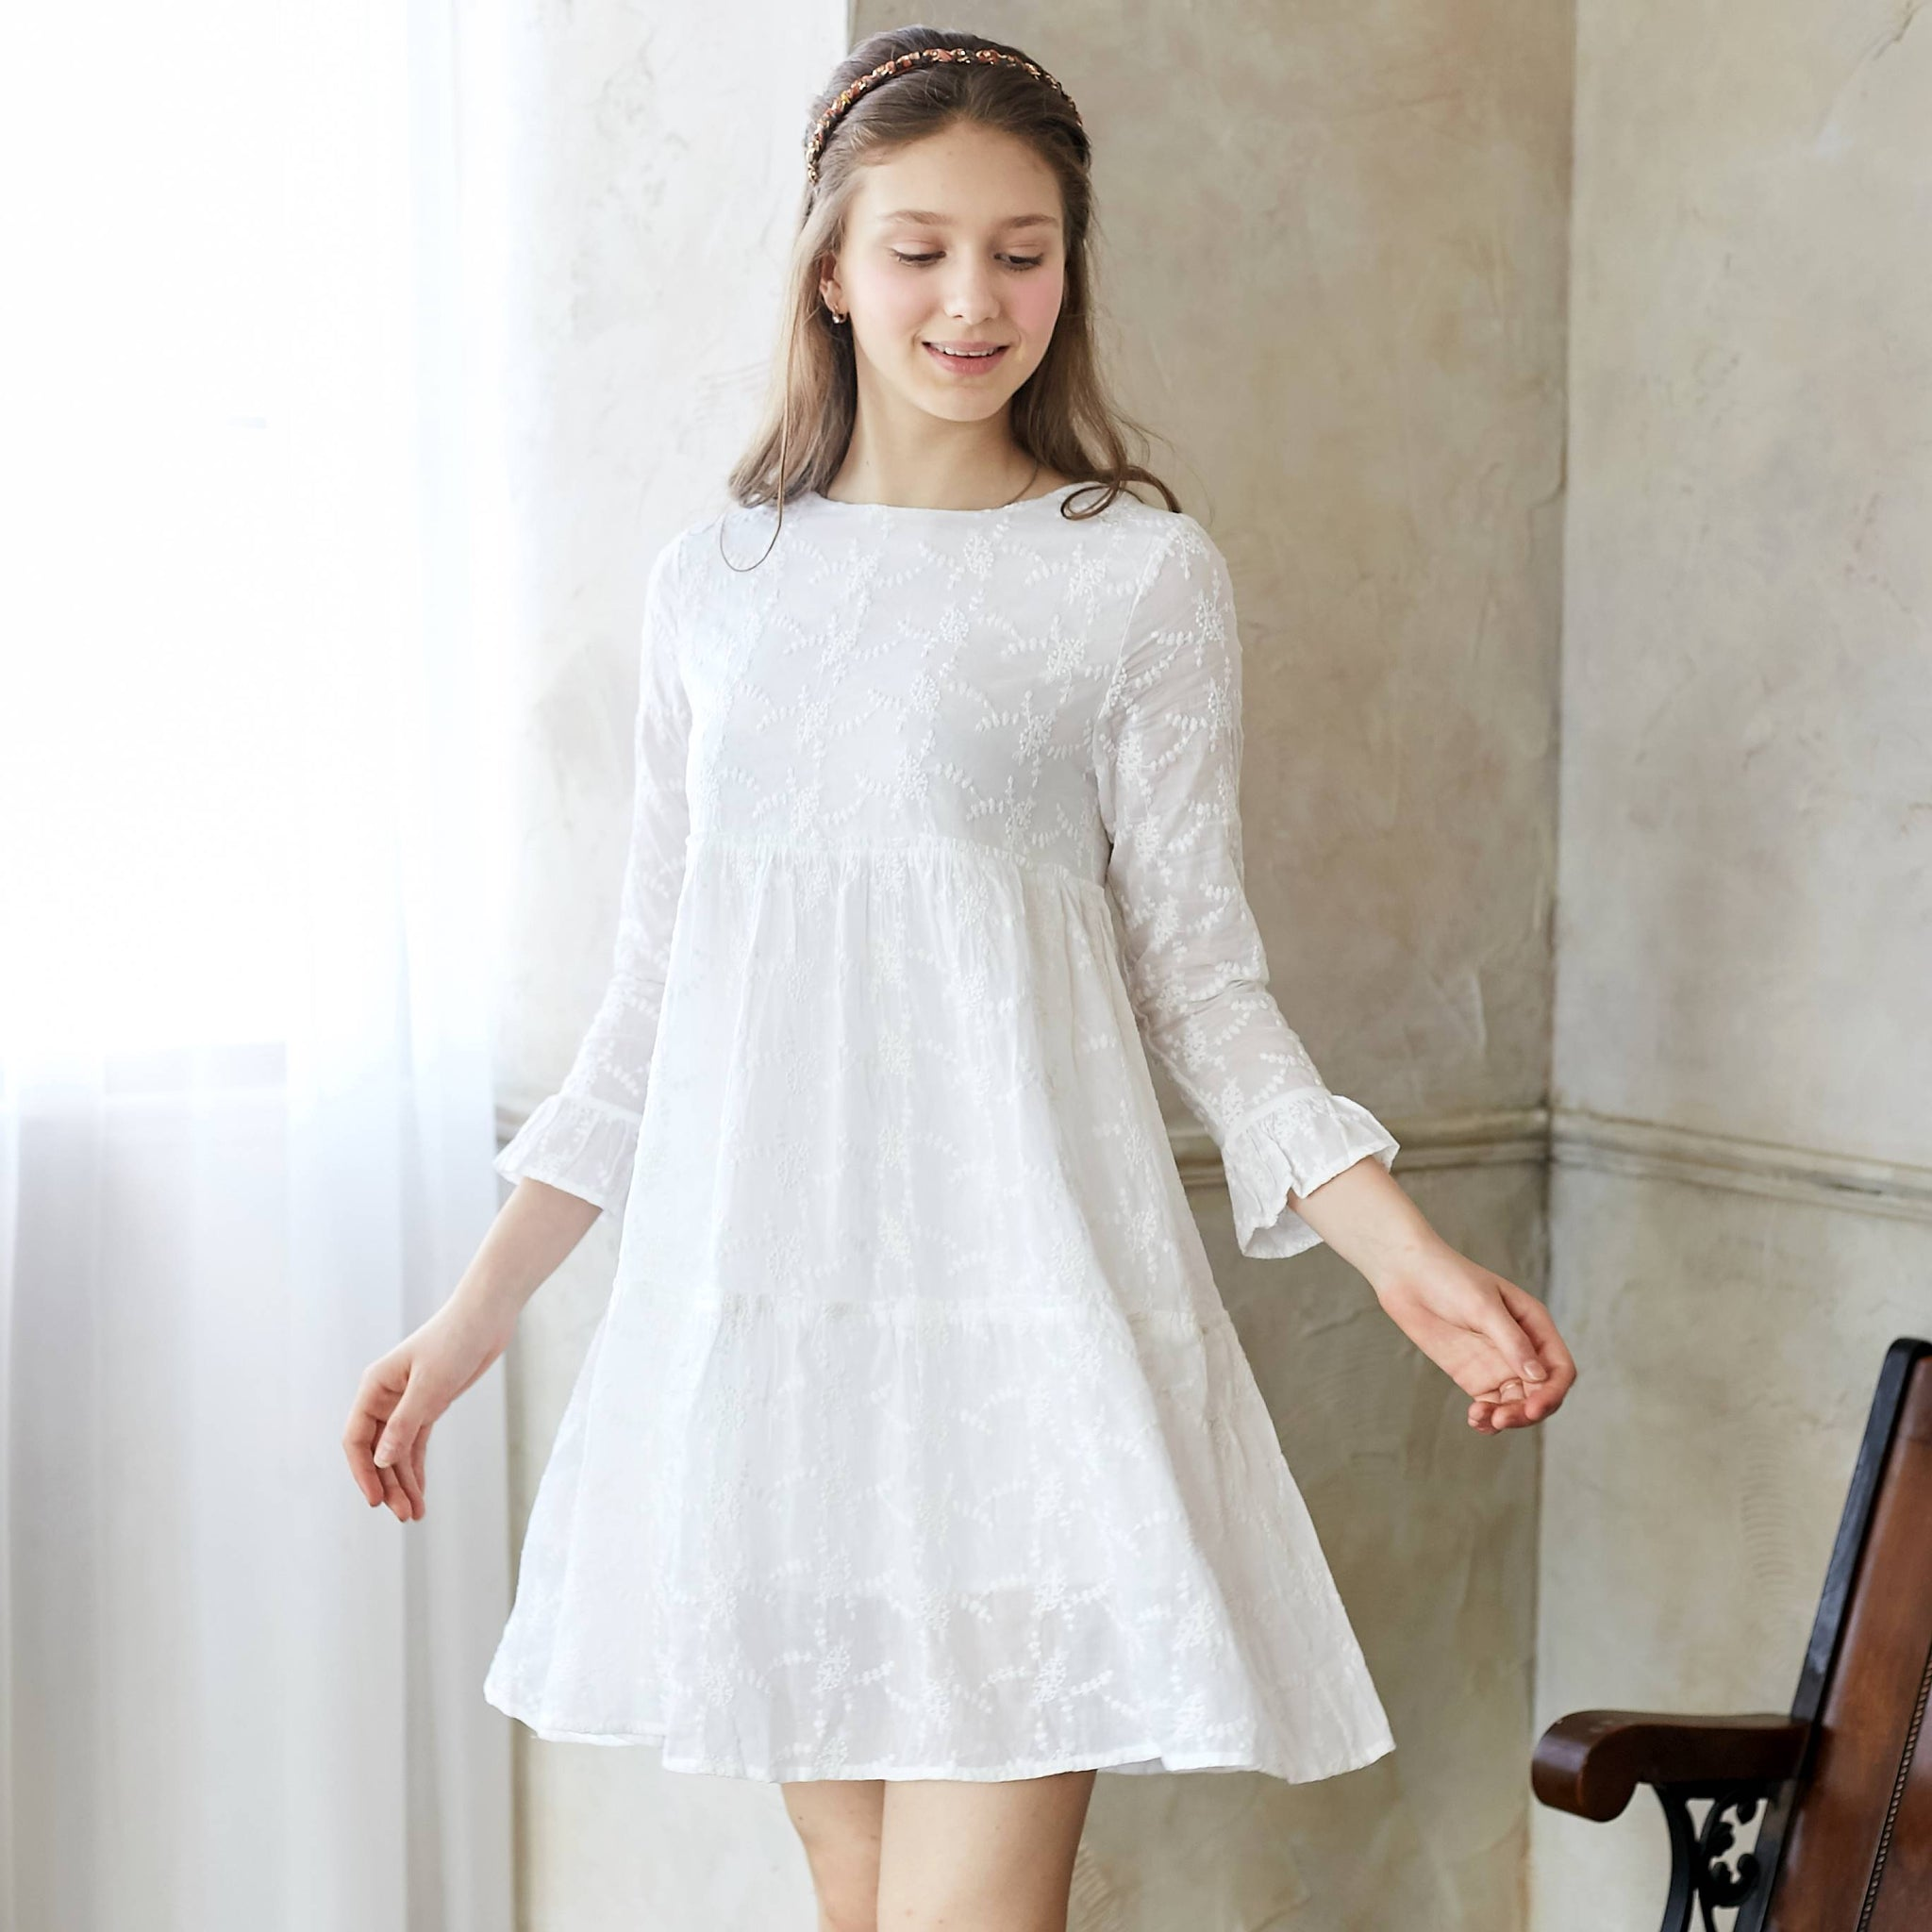 Snow embroidered dress - Bunny n Bloom Mommy & Me Dress